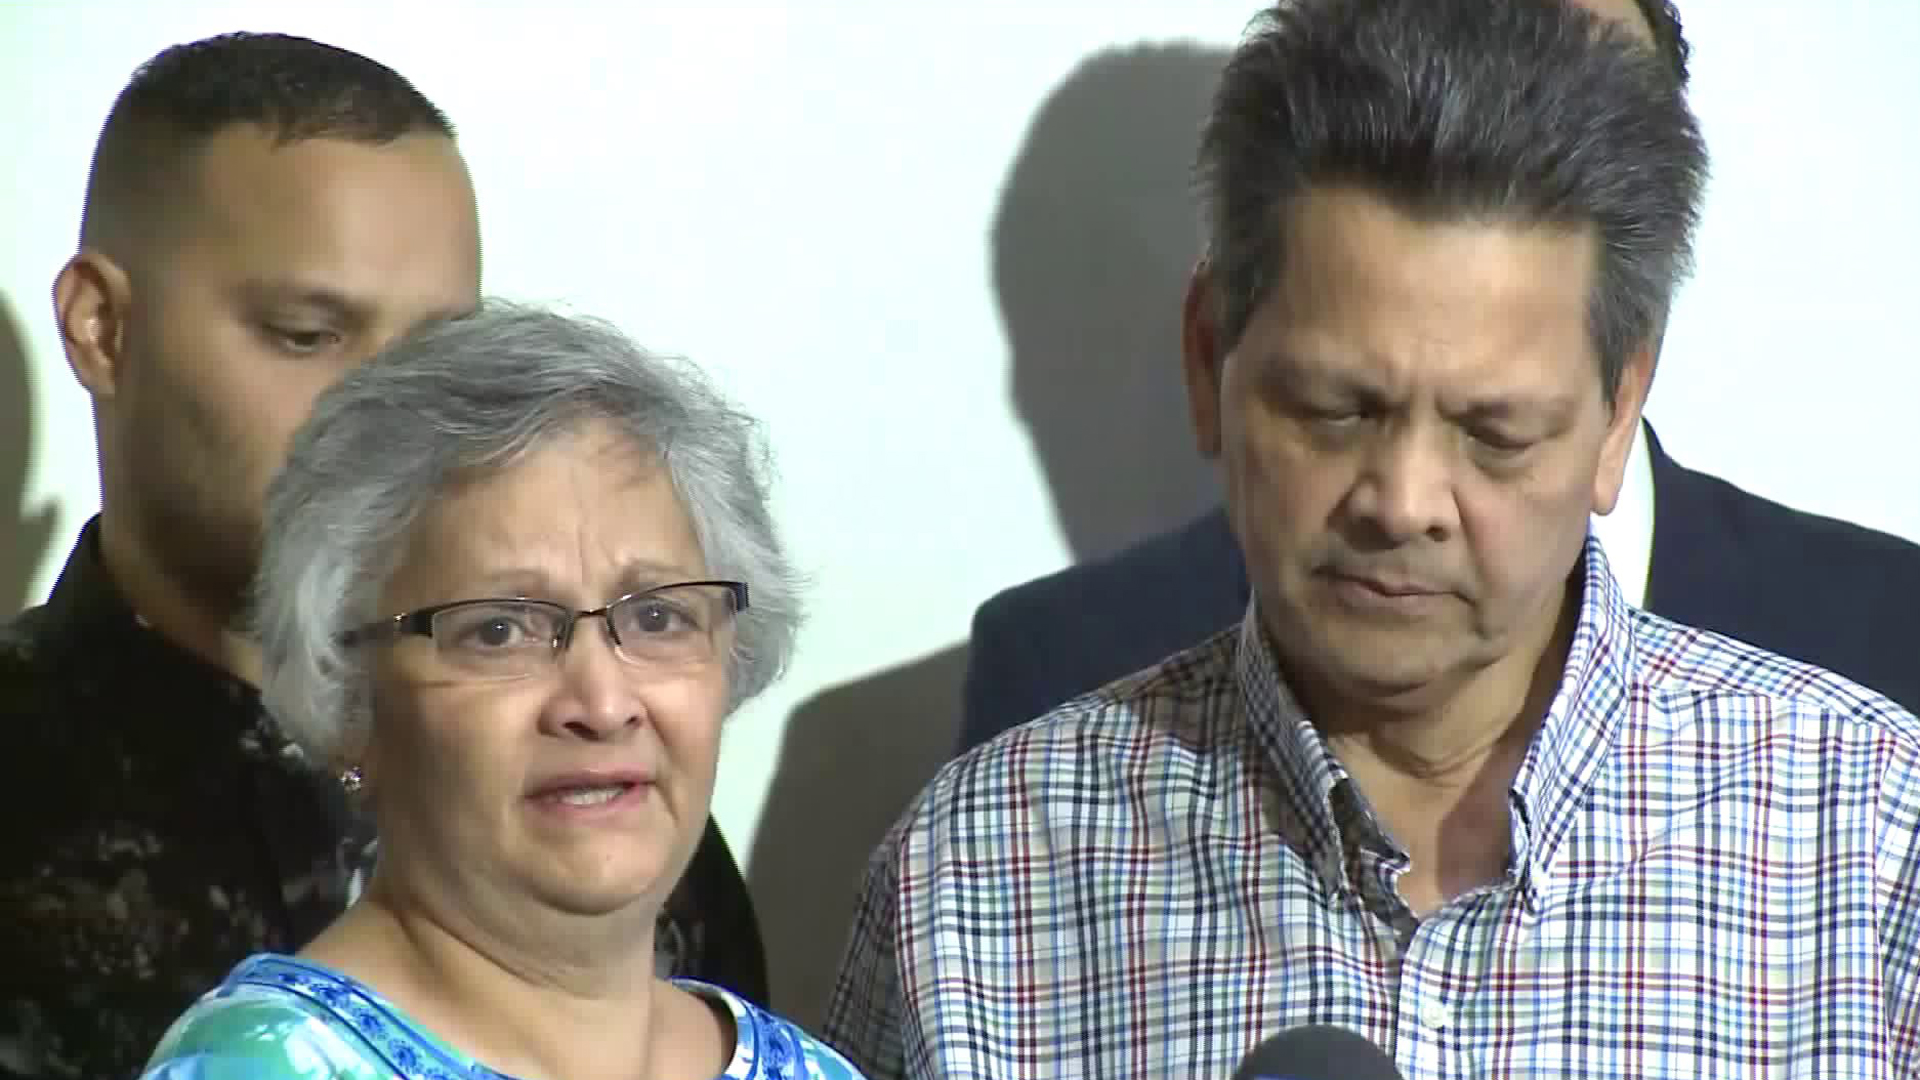 Russell and Paola French speak out during a news conference on Sept. 26, 2019. (Credit: KTLA)